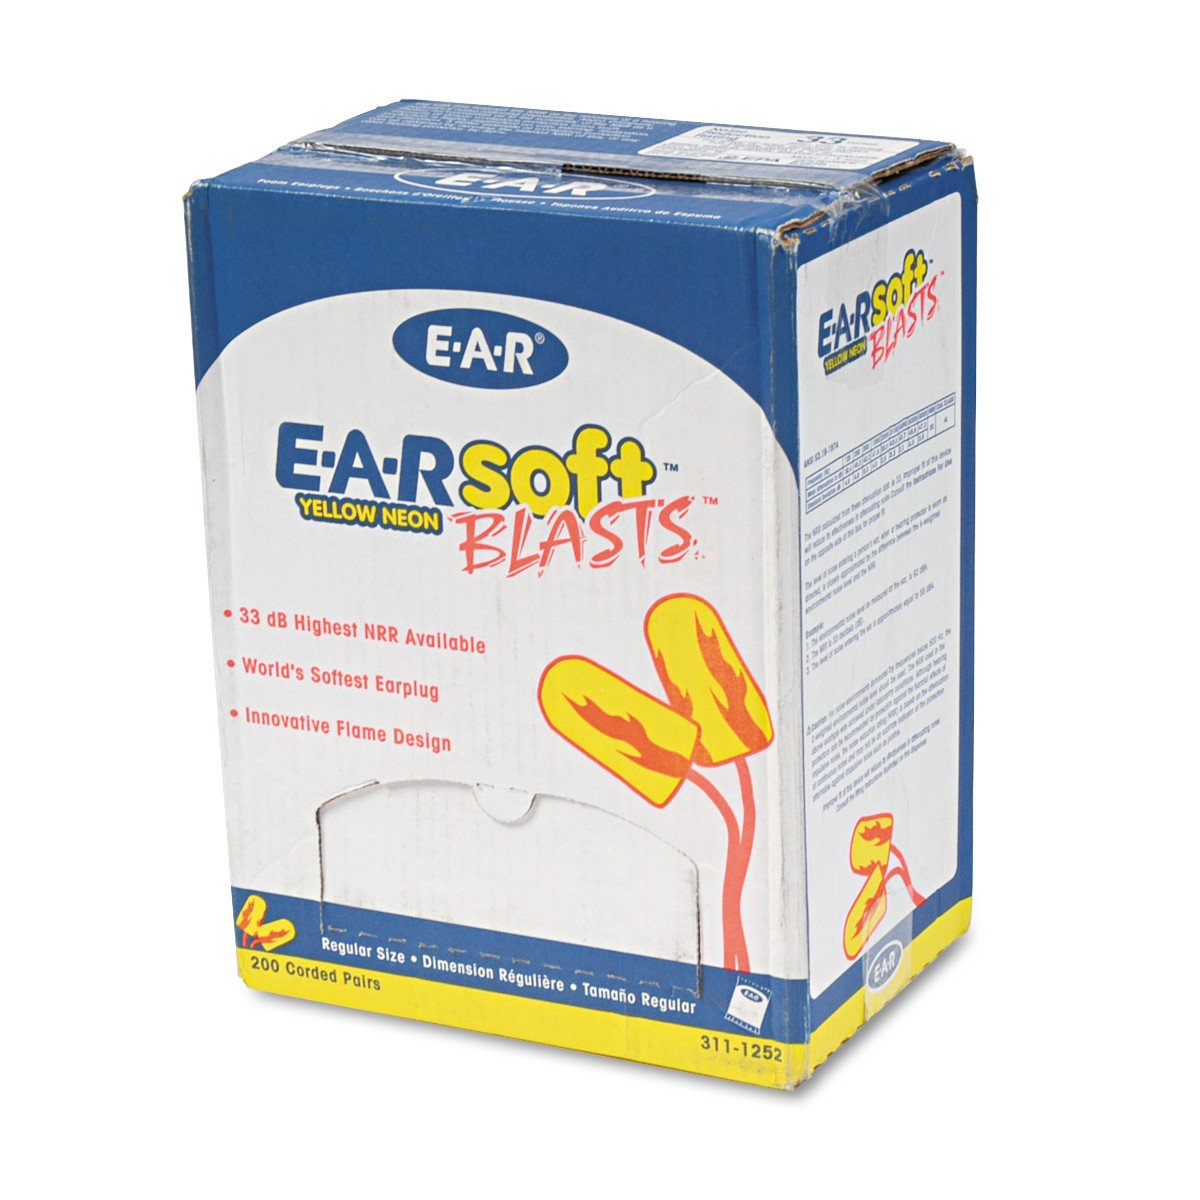 3M E-A-R Earsoft Corded Earplugs, Neon Yellow, 200-Pair by 3M